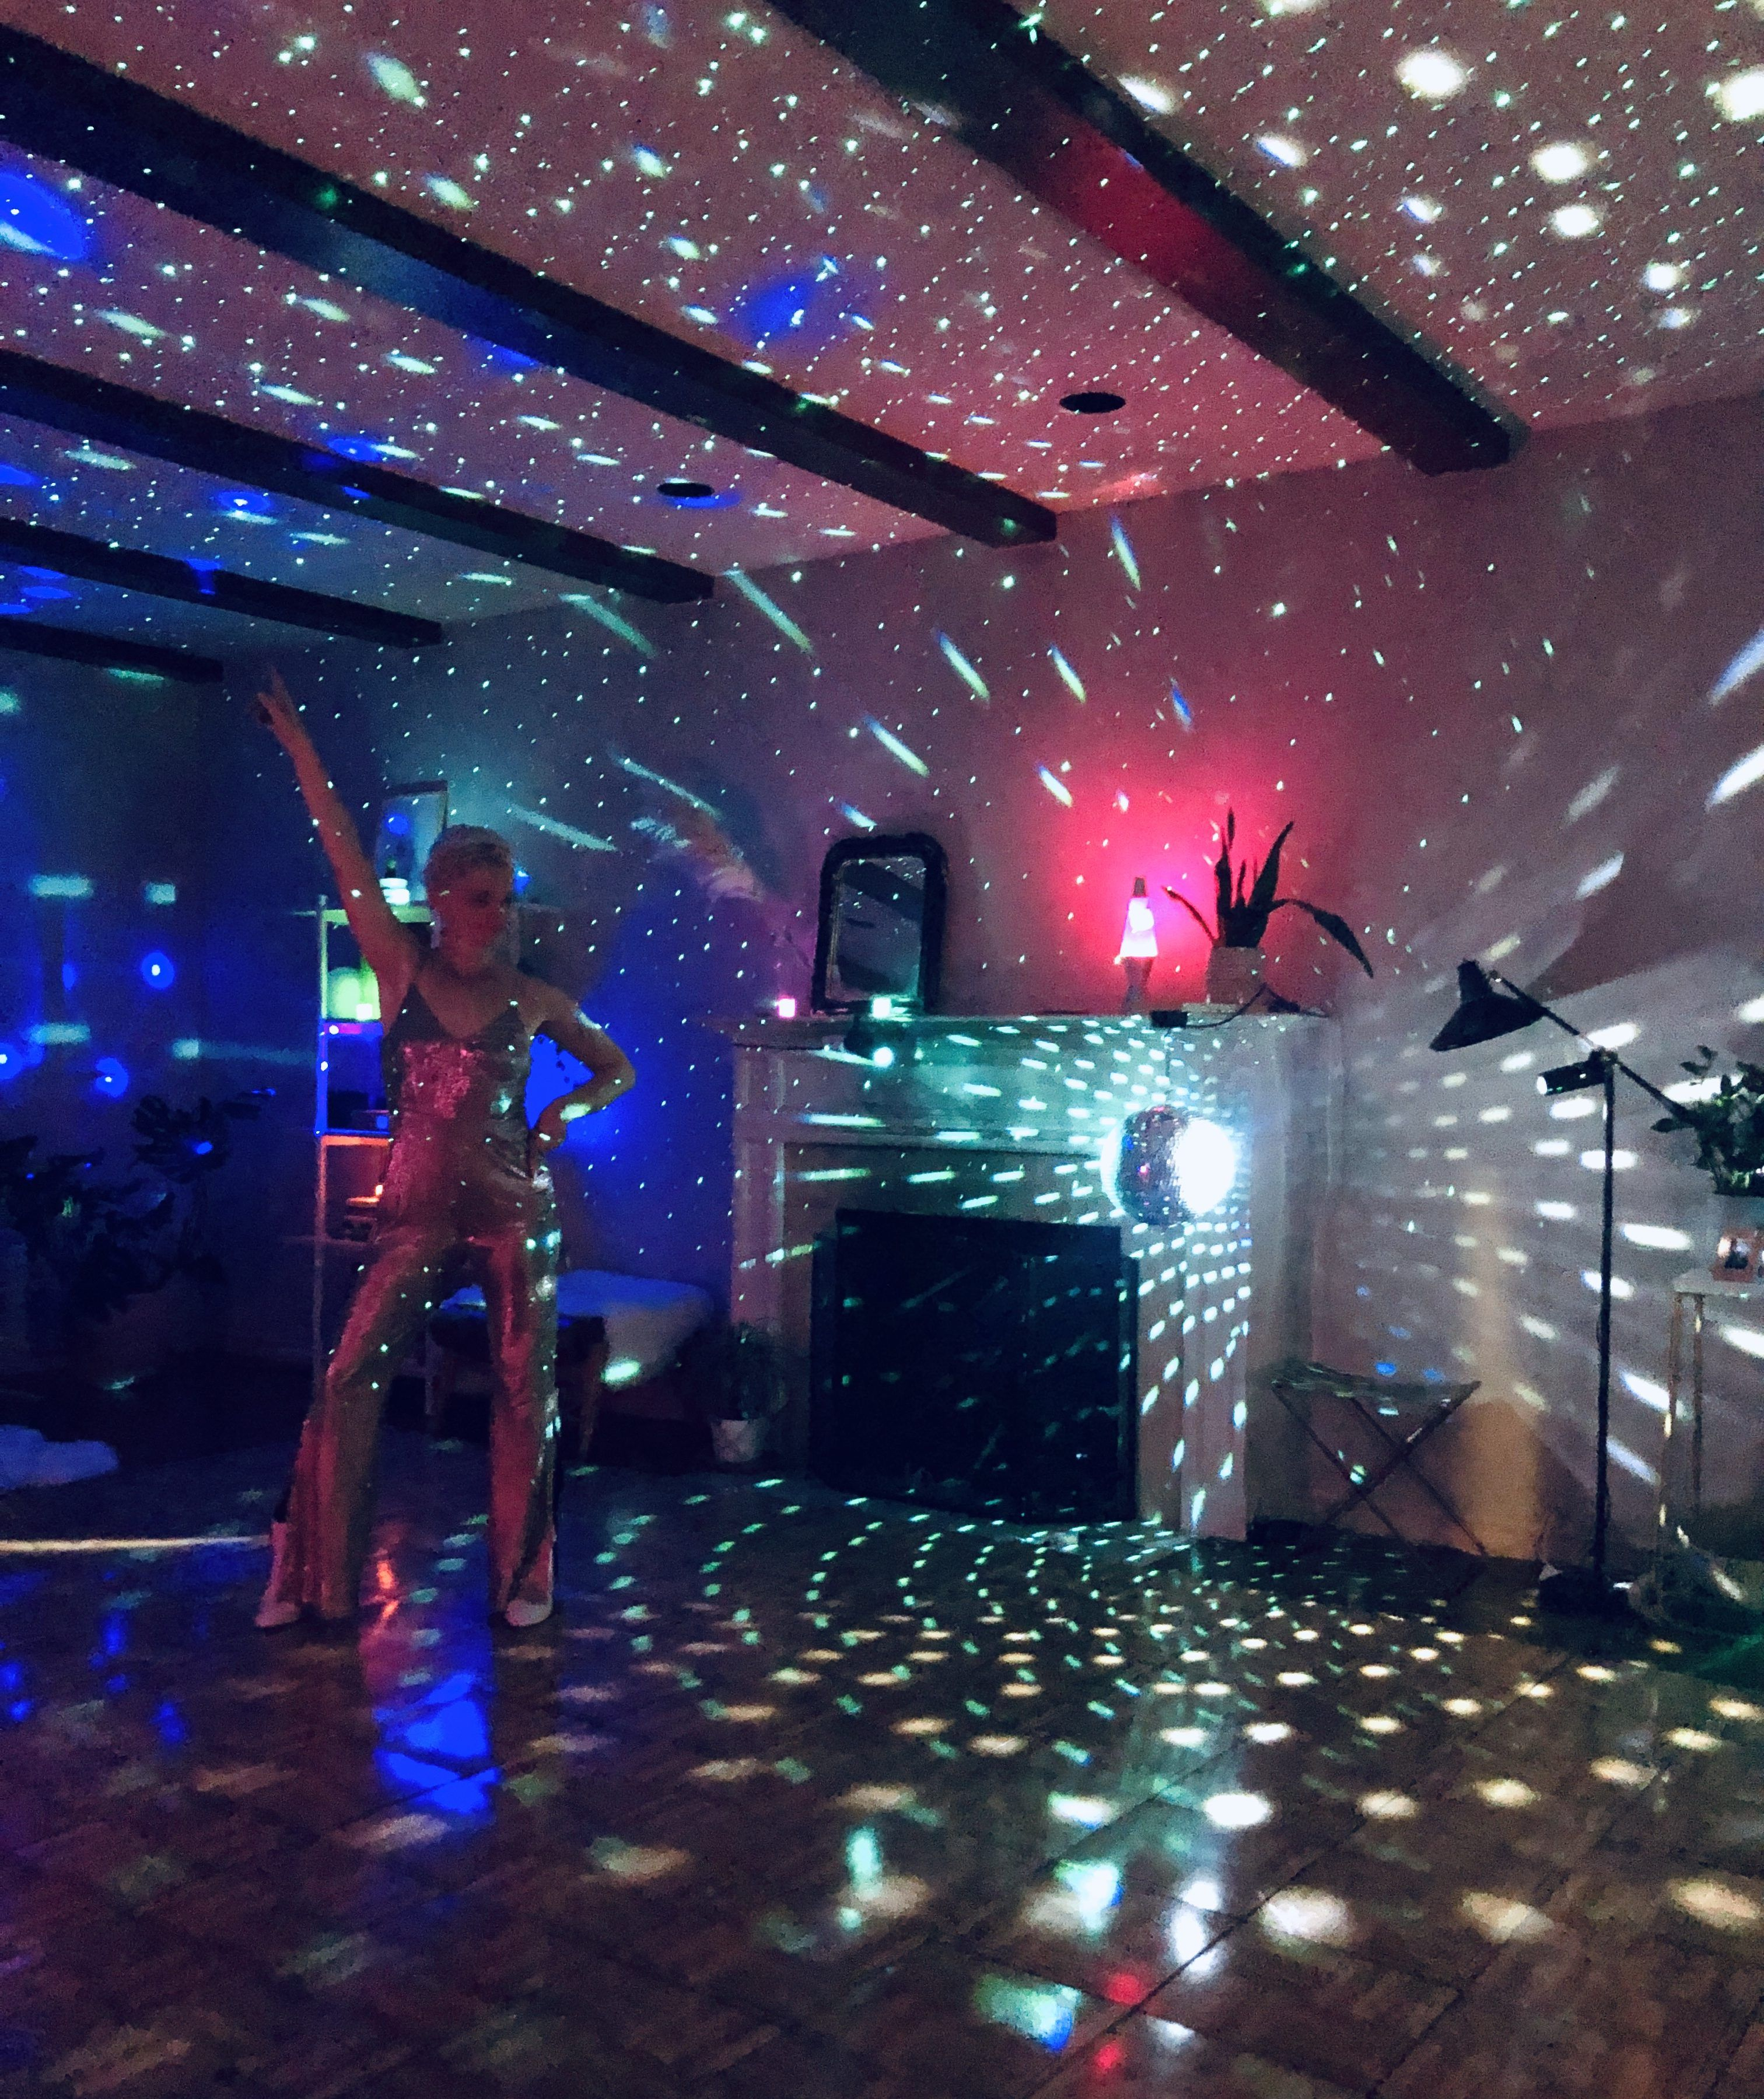 Last weekend we have a huge party for my 40th birthday. It was a 70s disco theme (as a '79 baby) and it was SO much fun. Had lots of questions about the lighting, so here are some details…